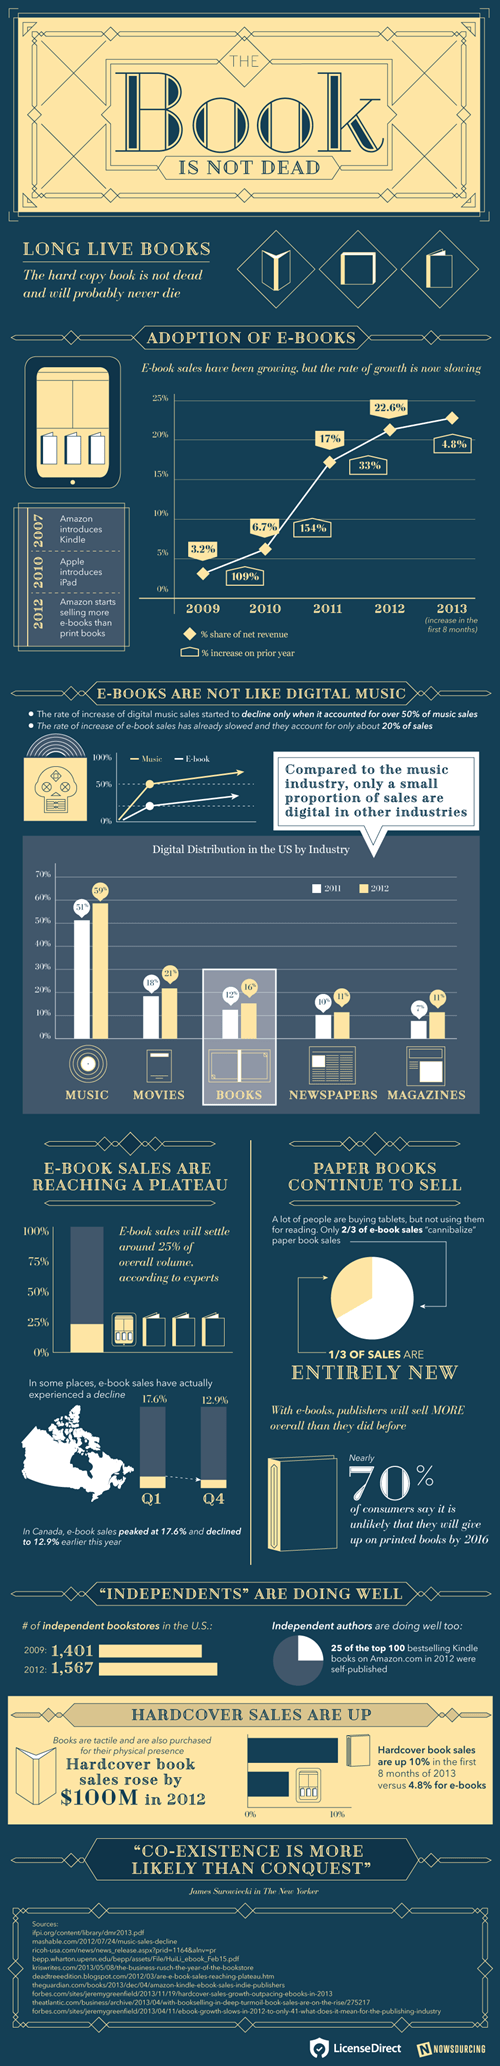 books infographic reading - 7960450560